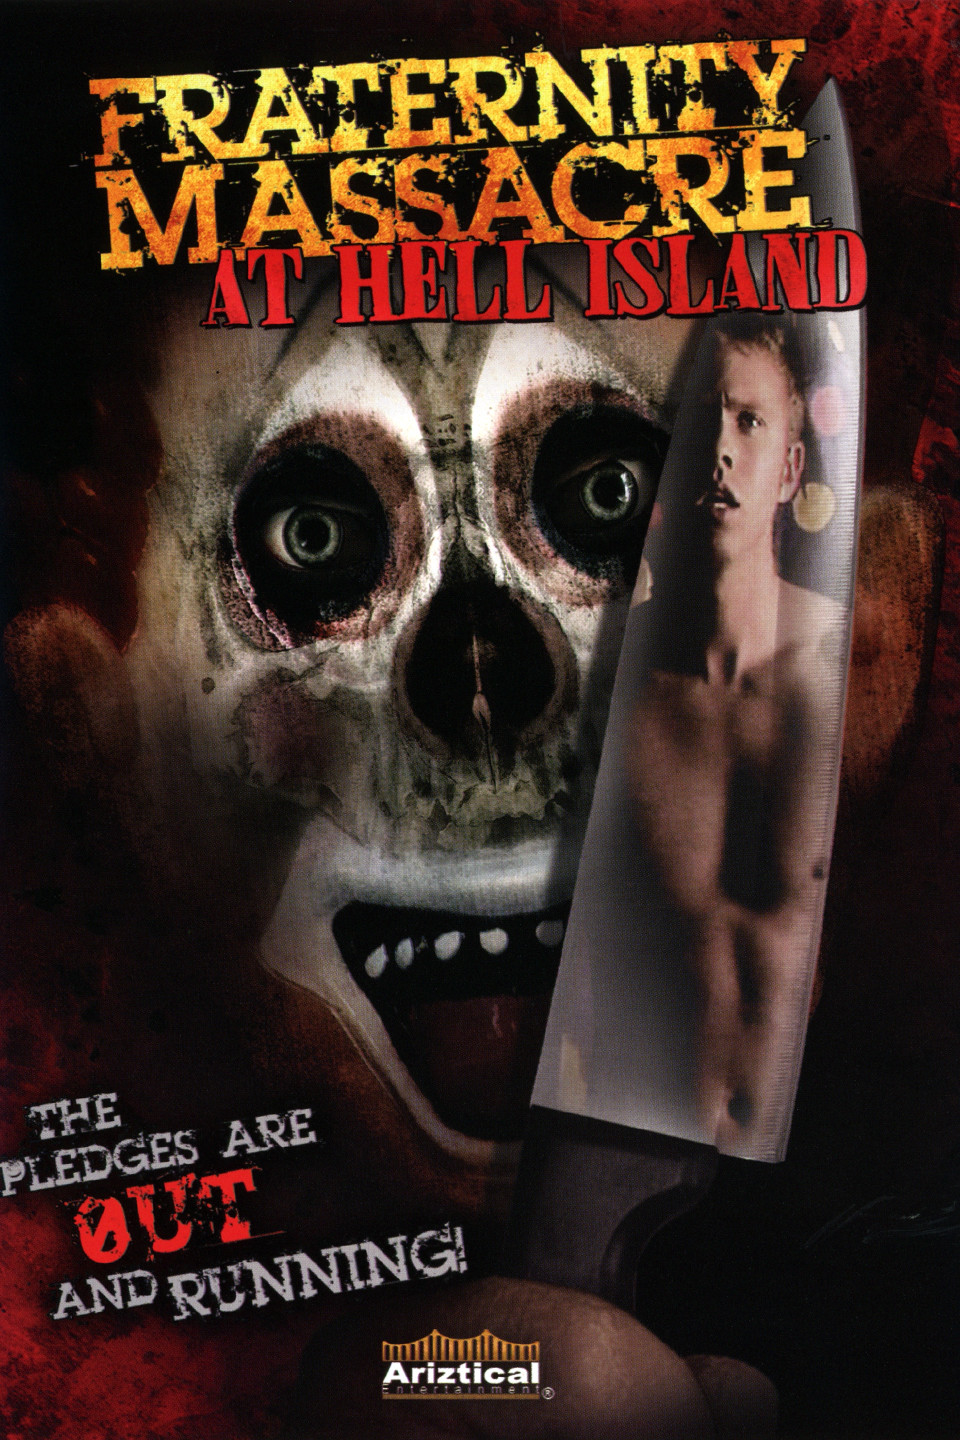 Fraternity Massacre at Hell Island